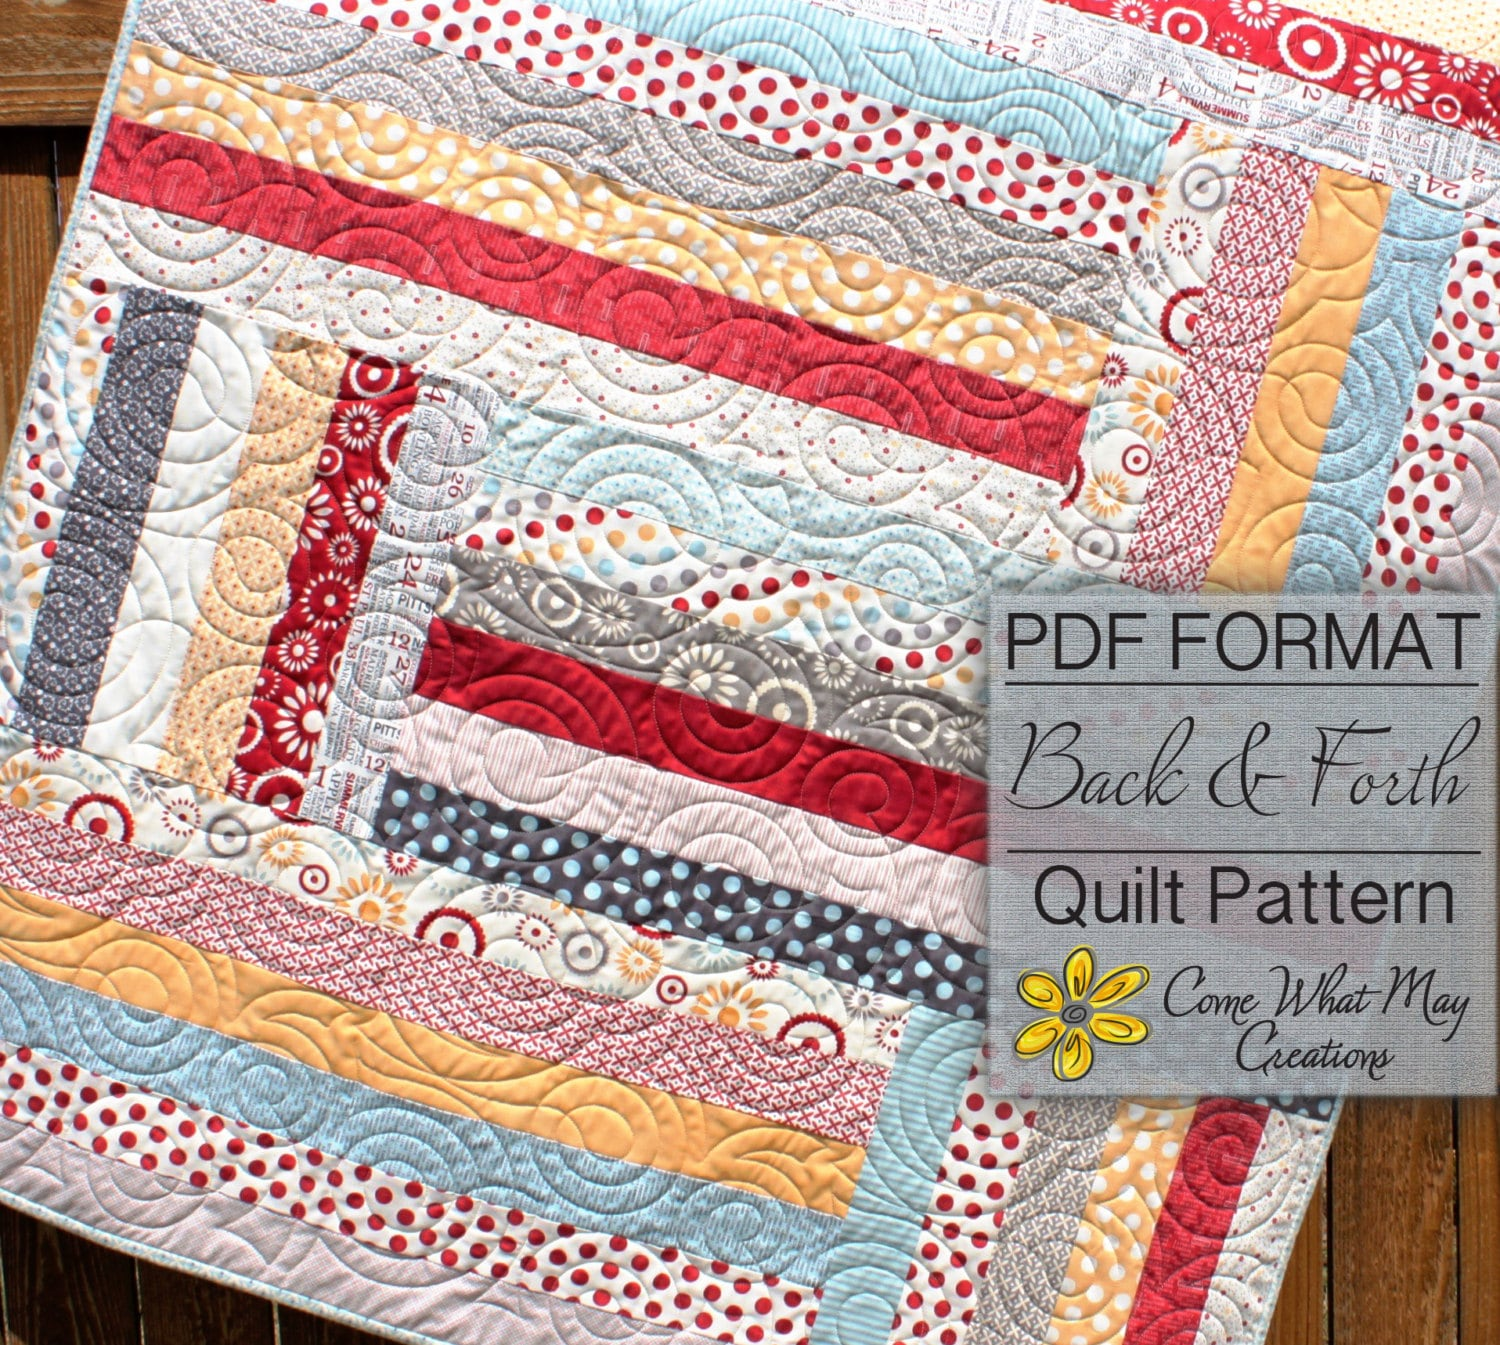 Baby Quilt Pattern Jelly Roll Quilt Pattern Back & Forth : jelly roll quilt books - Adamdwight.com